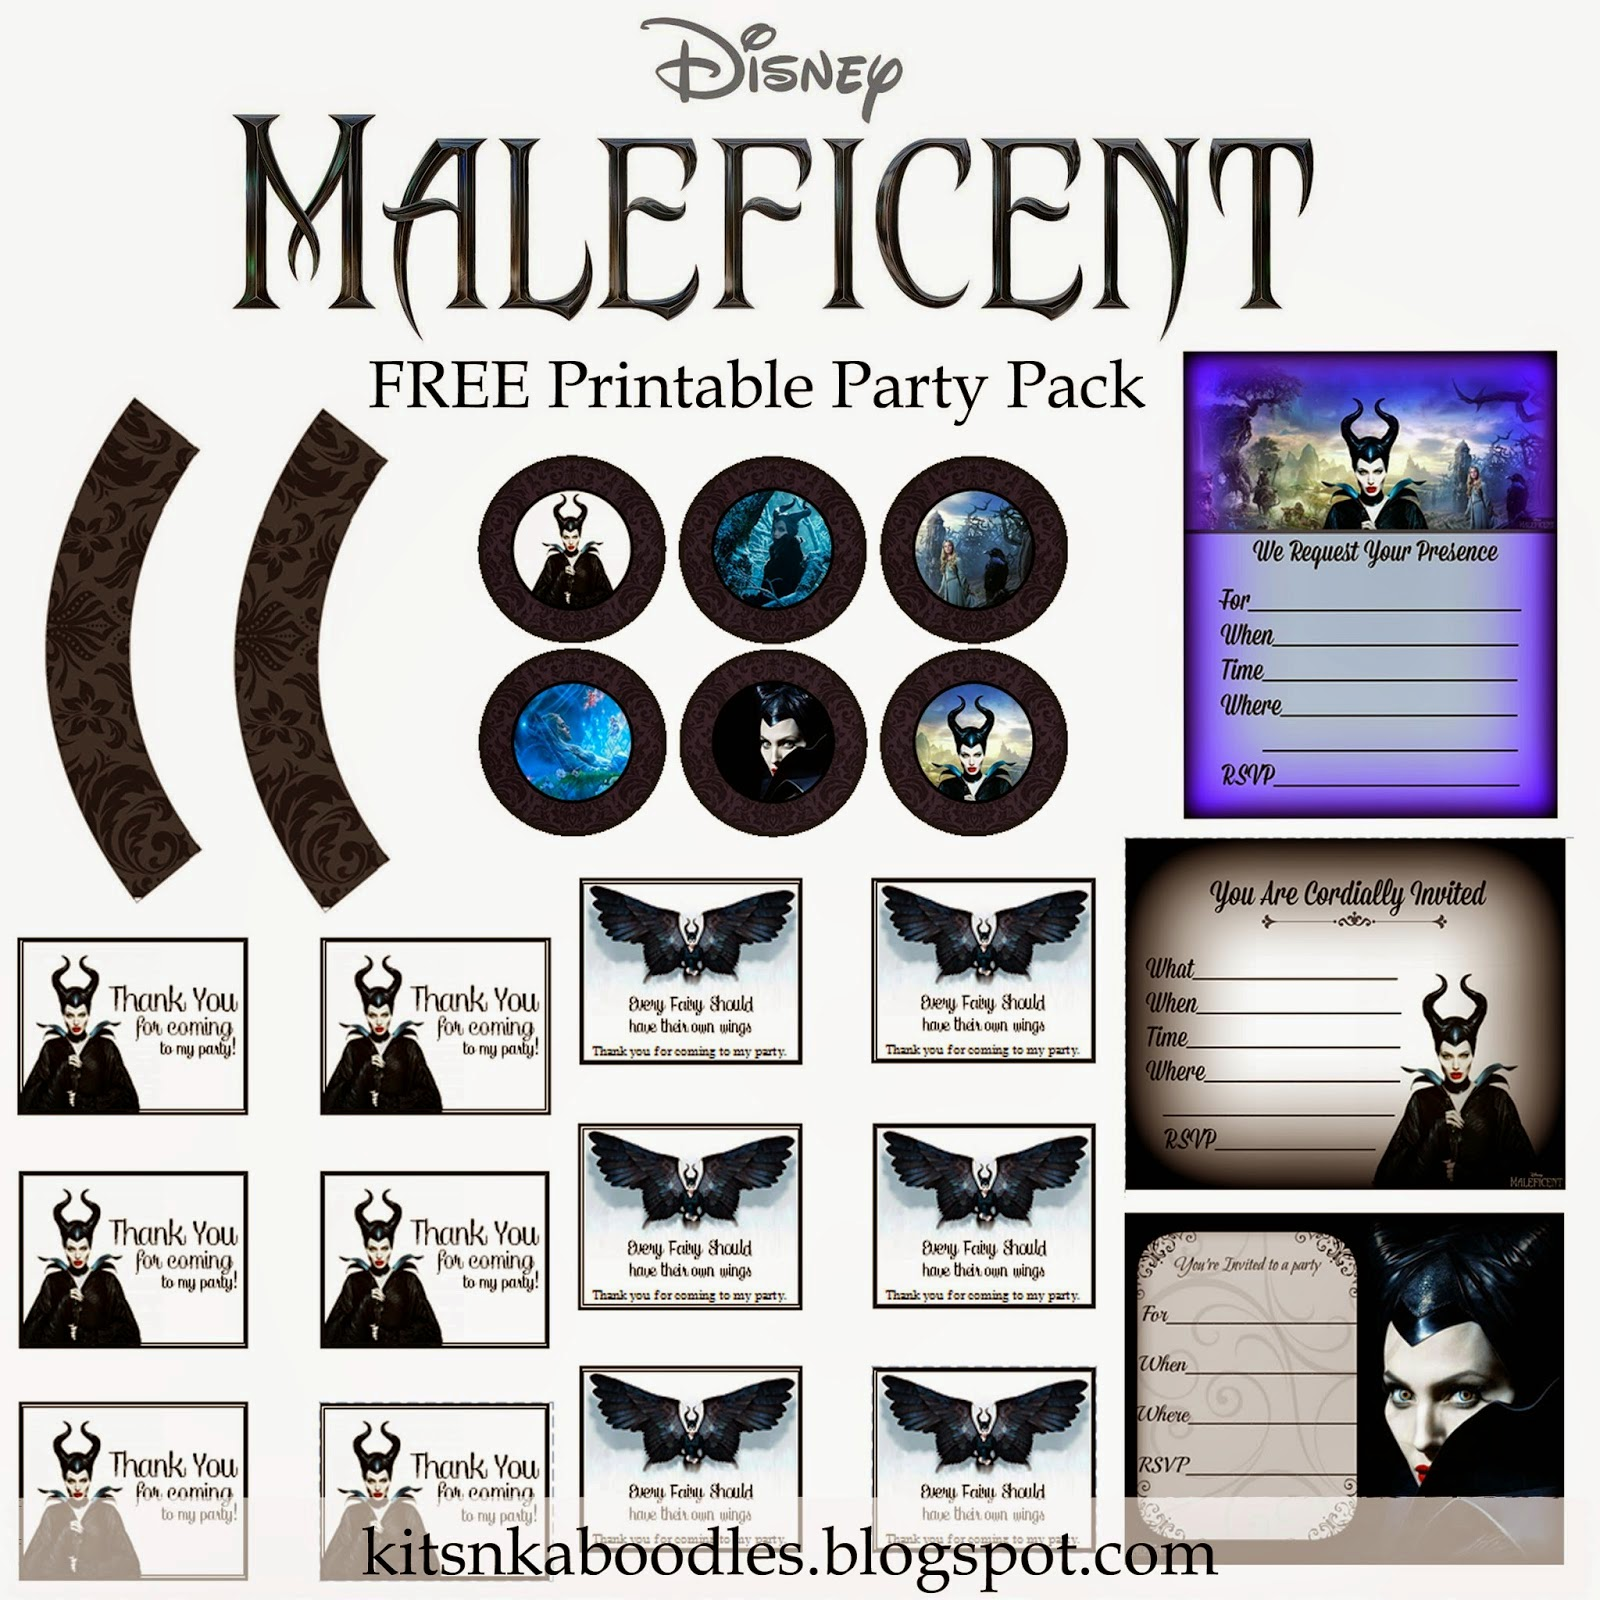 Maleficent Free Printable Kit. | Oh My Fiesta! in english - photo #21